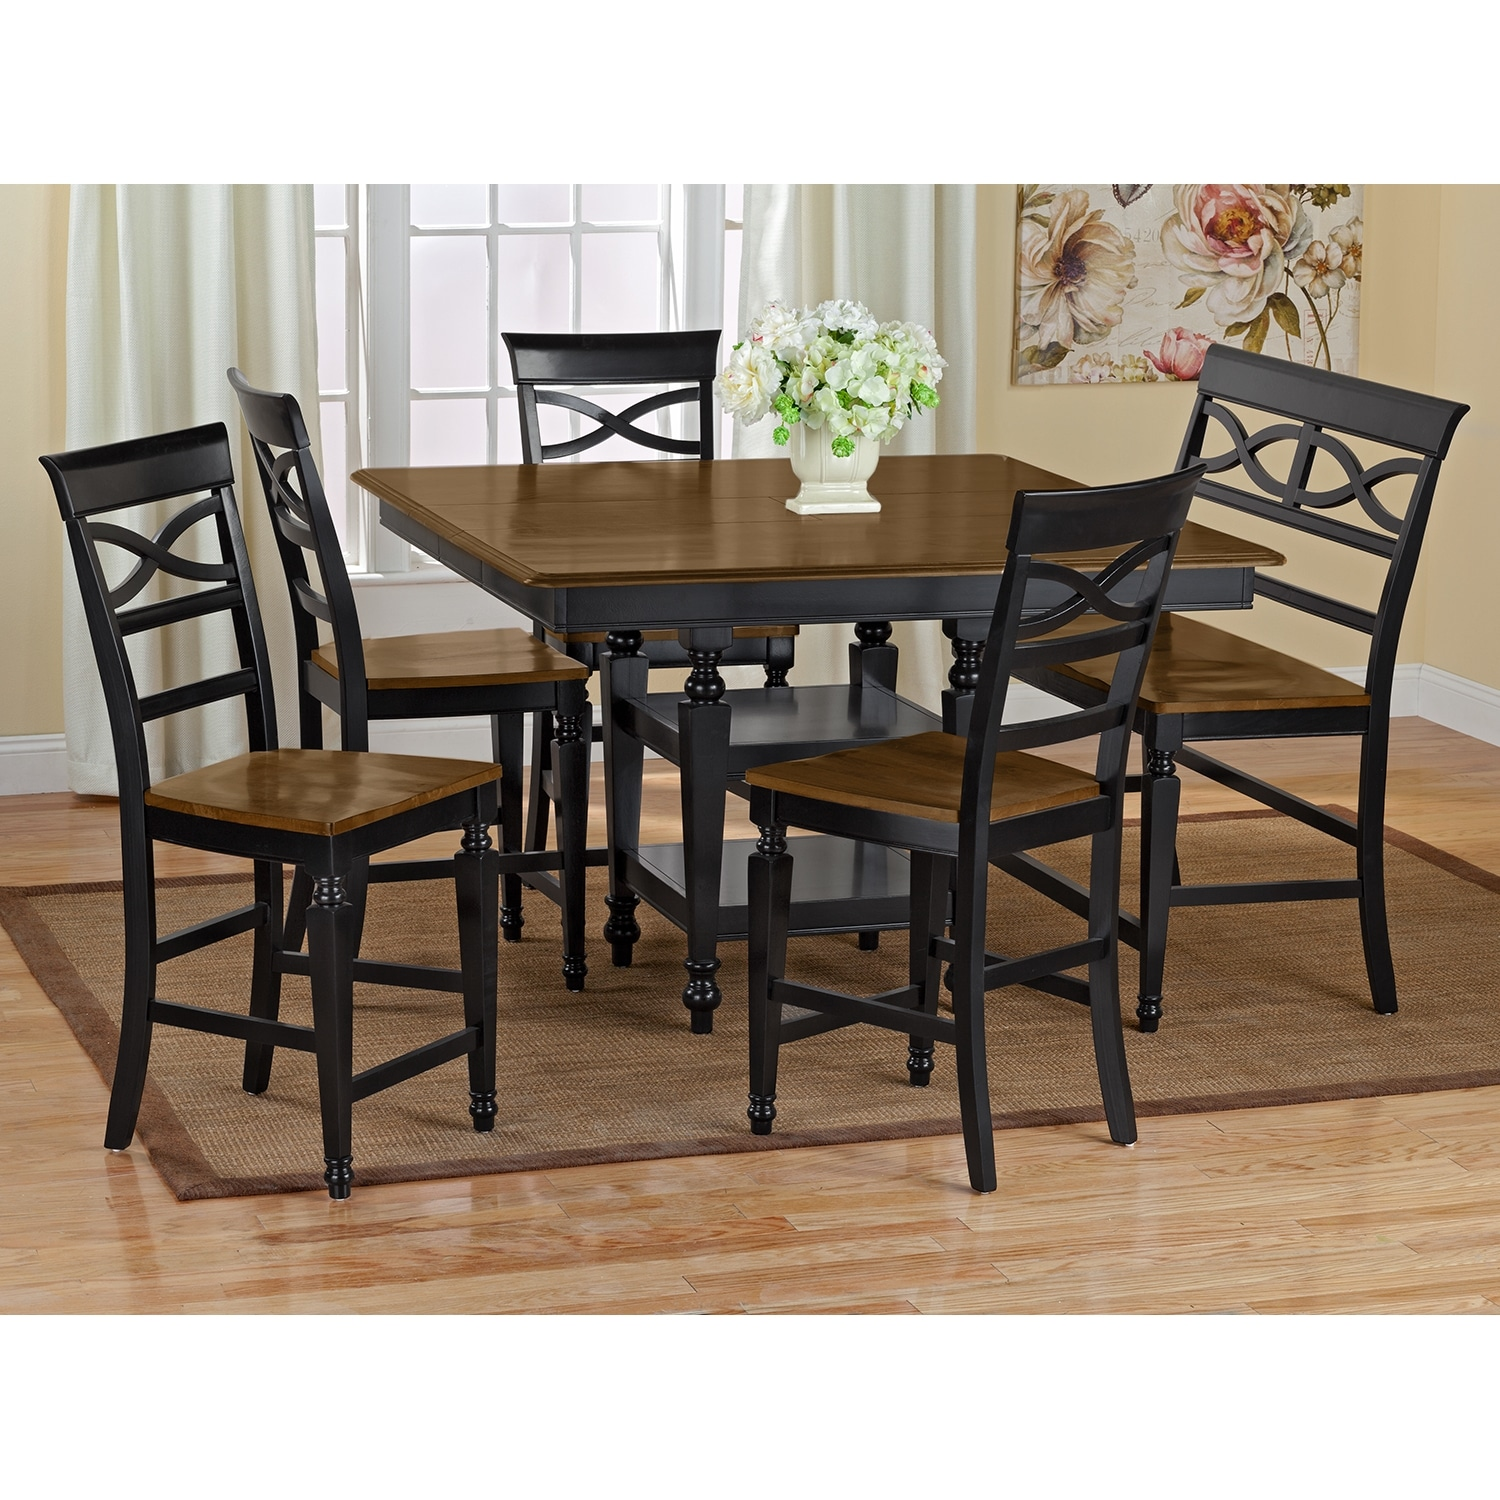 chesapeake dining room counter height table value city furniture